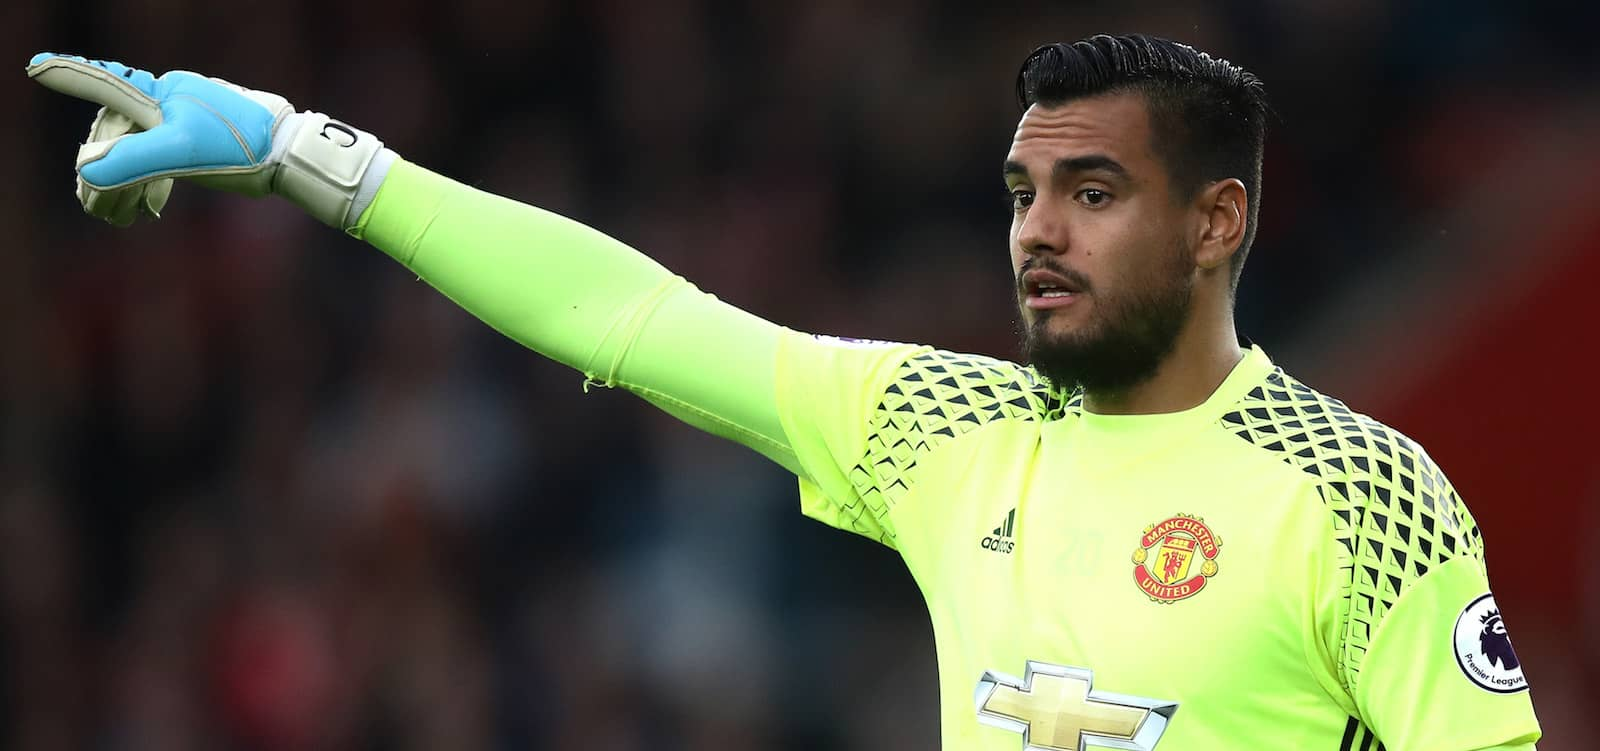 Manchester United fans thrilled with Sergio Romero's performance against Southampton